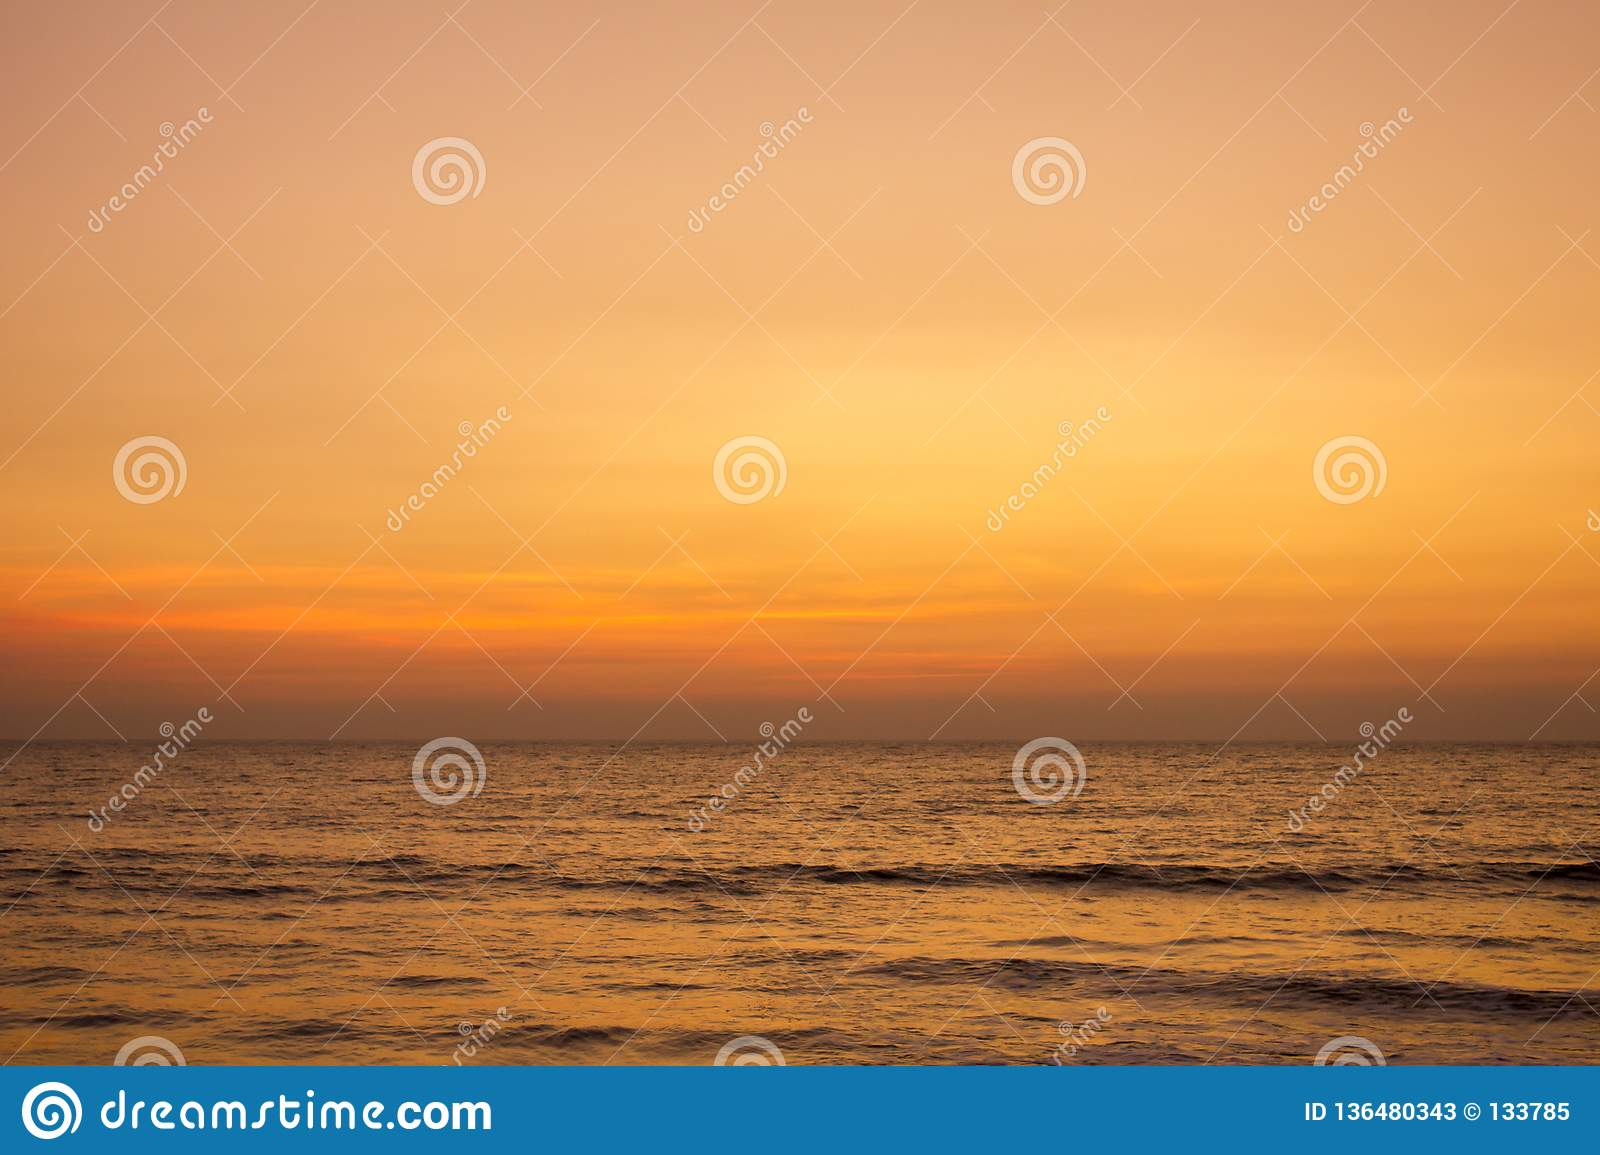 A bright yellow gray pink sunset sky over the ocean